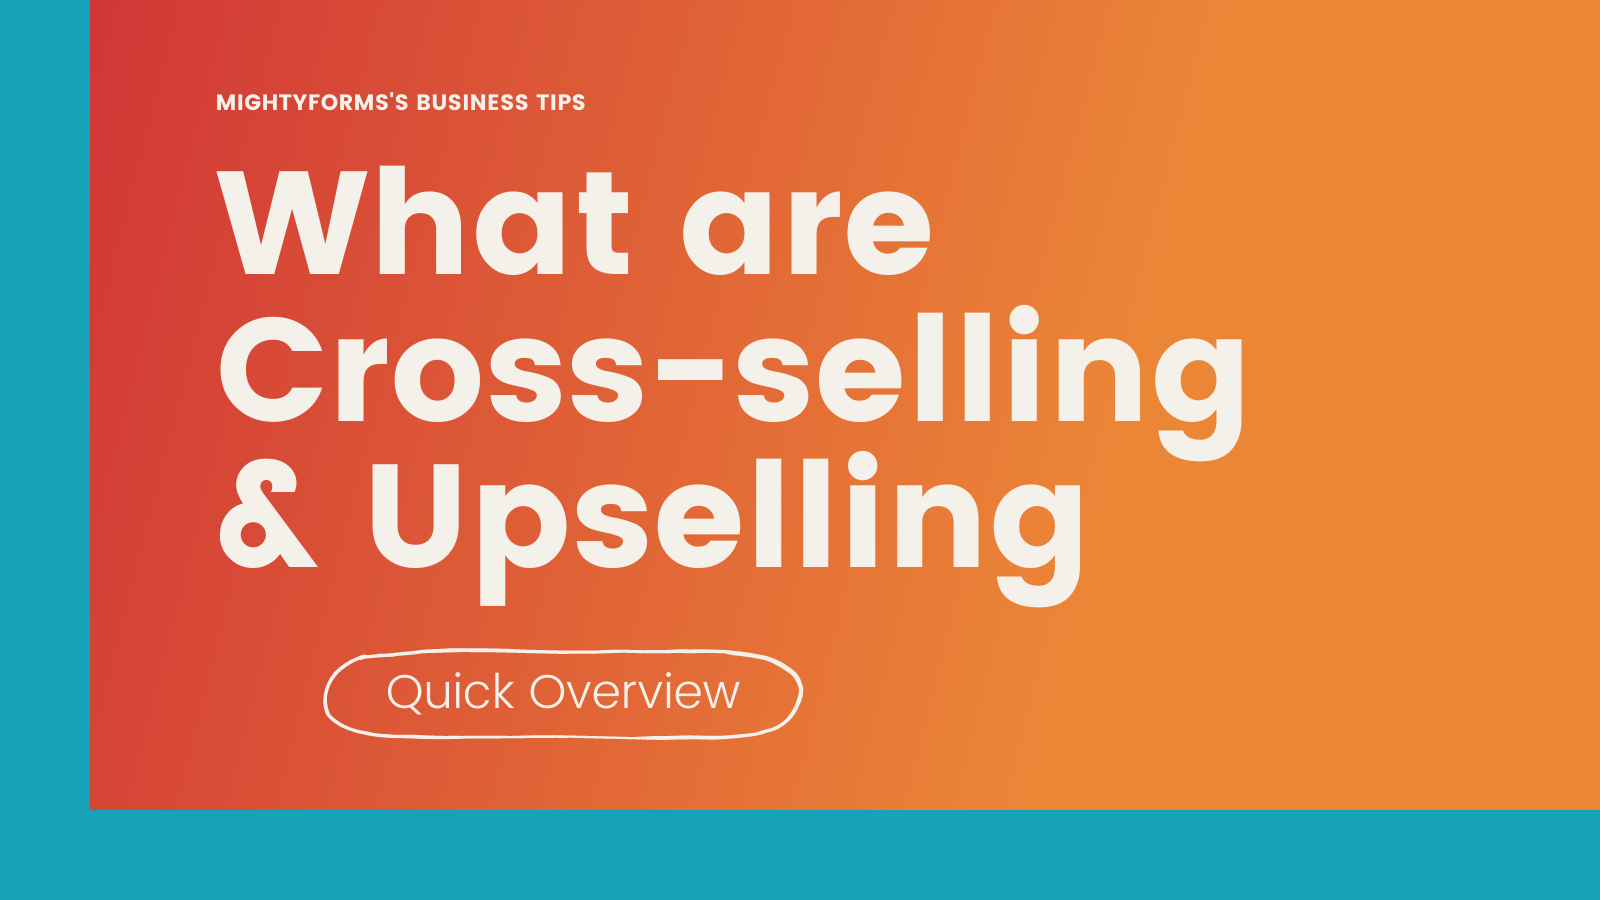 what are cross-selling & upselling infographic 1 _ MightyForms